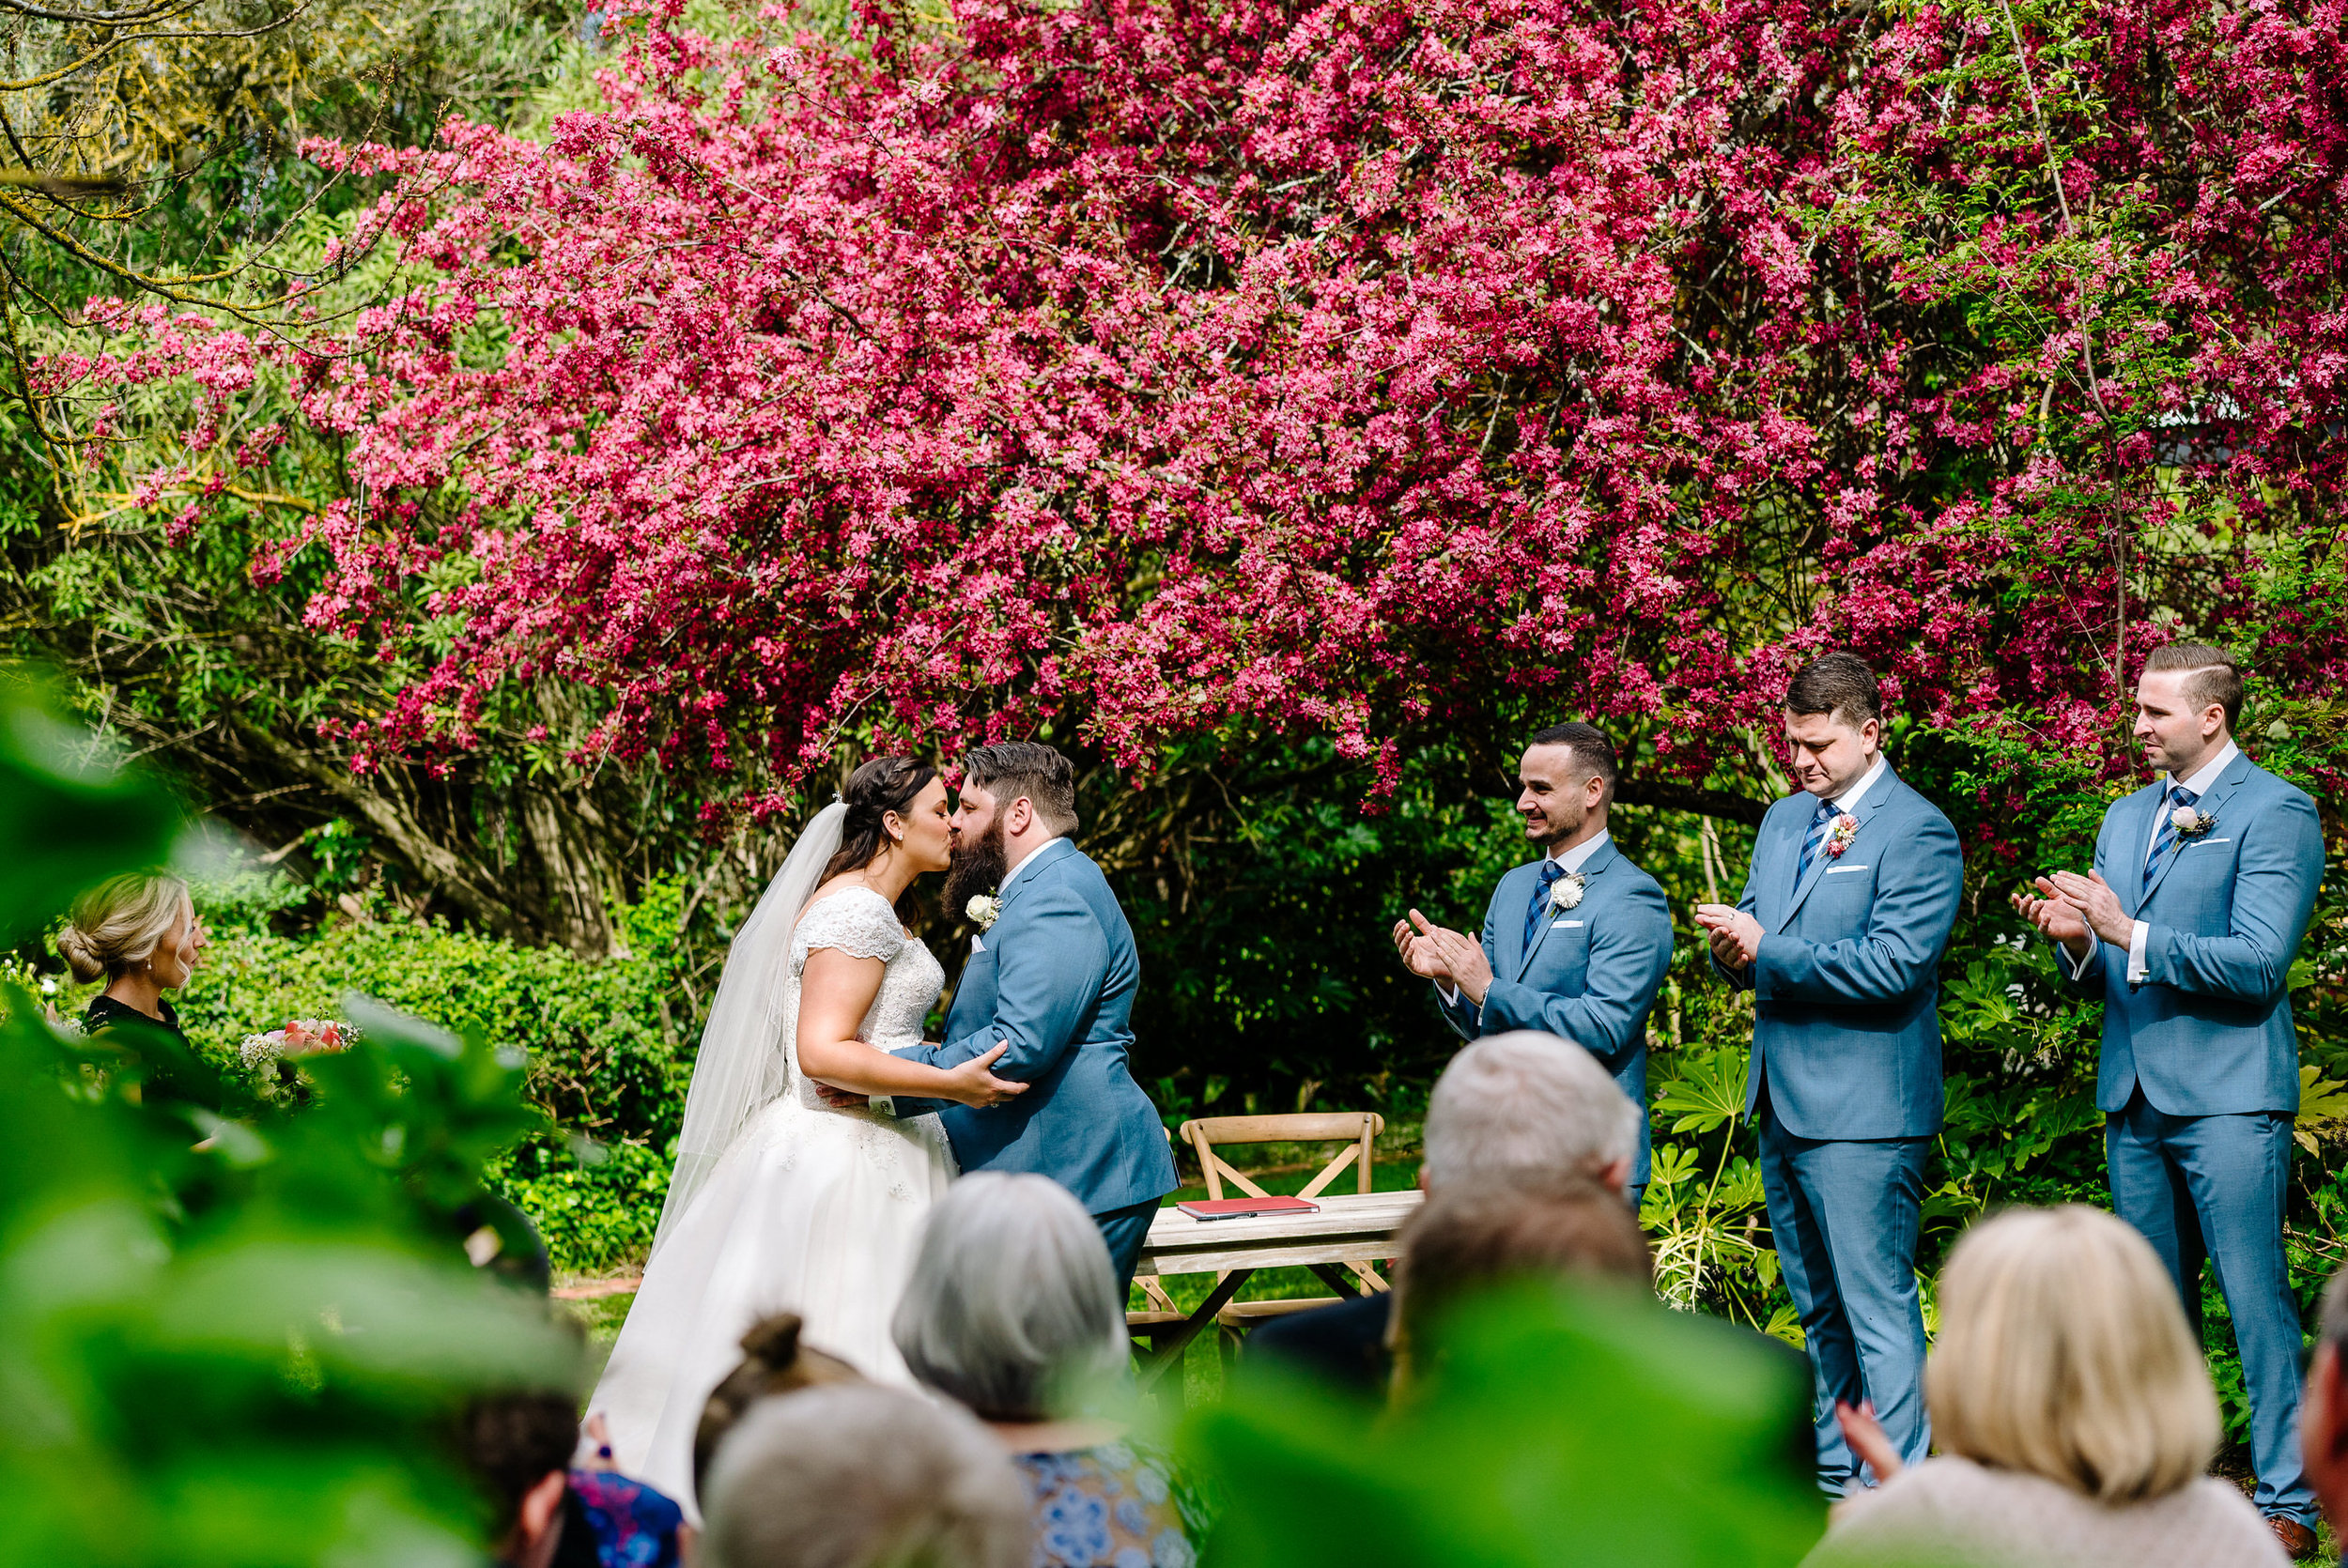 Chateau_Dore_Wedding_Photography_Justin_and_Jim-126.JPG